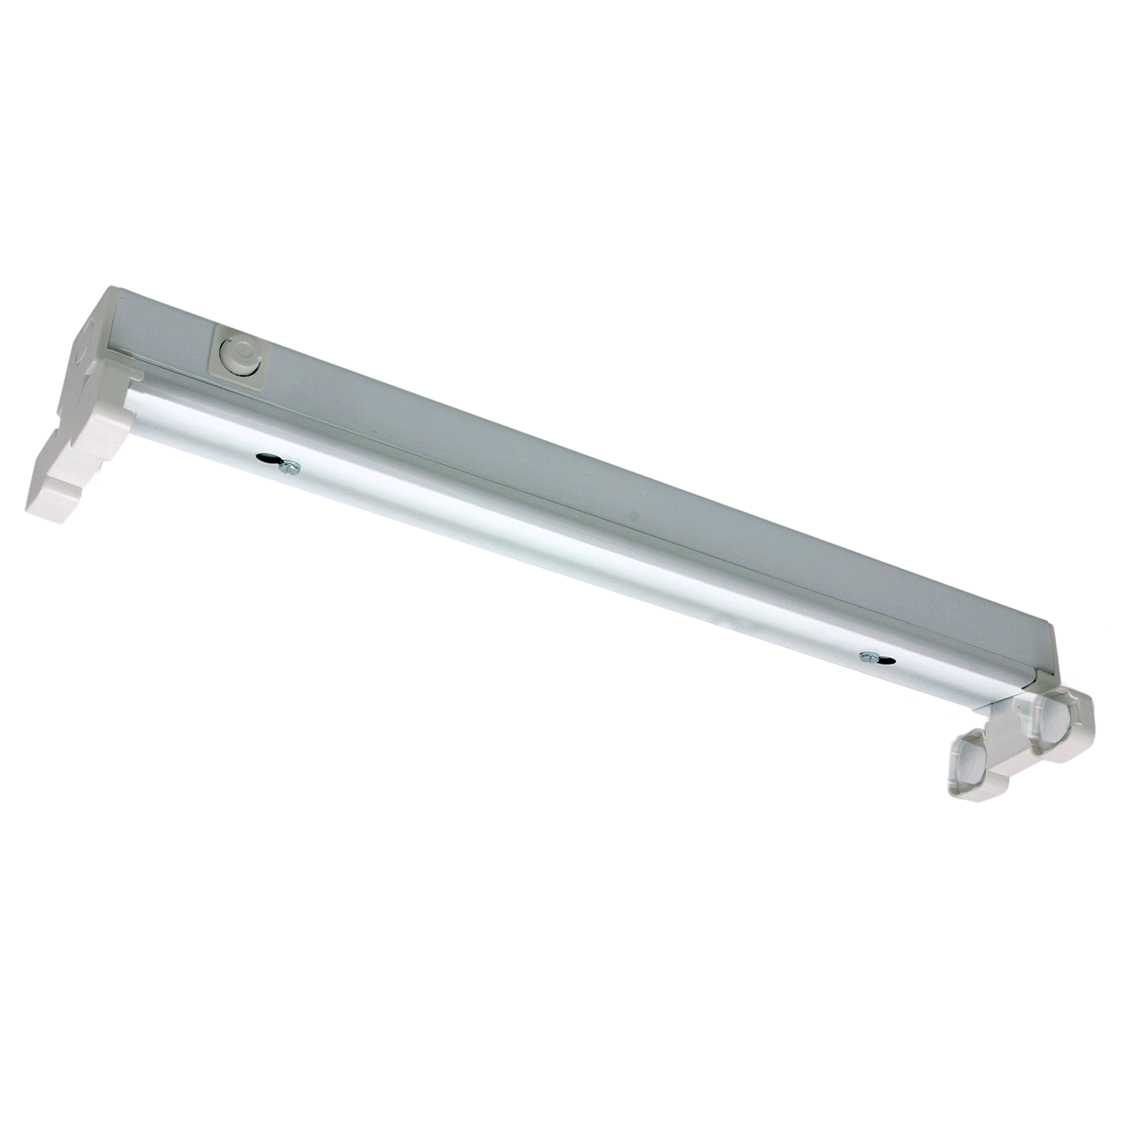 CED Empty Twin Batten Housing For LED Tubes 5ft